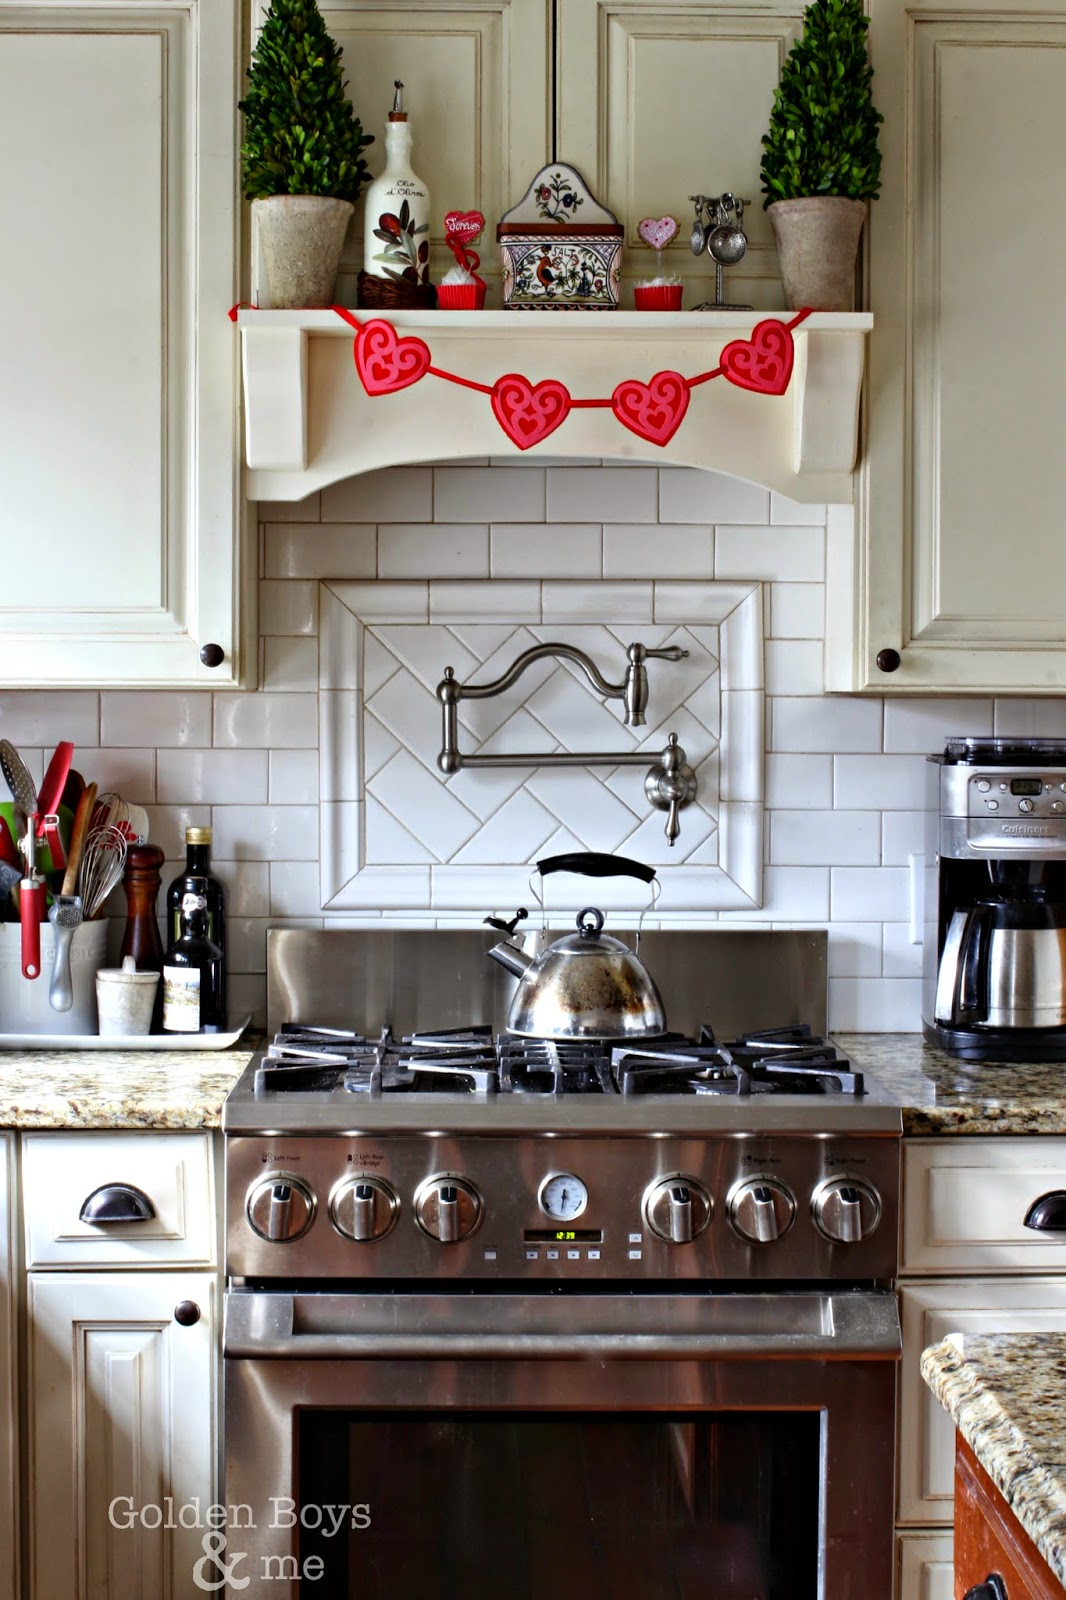 Target dollar spot heart garland on range hood mantel shelf-www.goldenboysandme.com